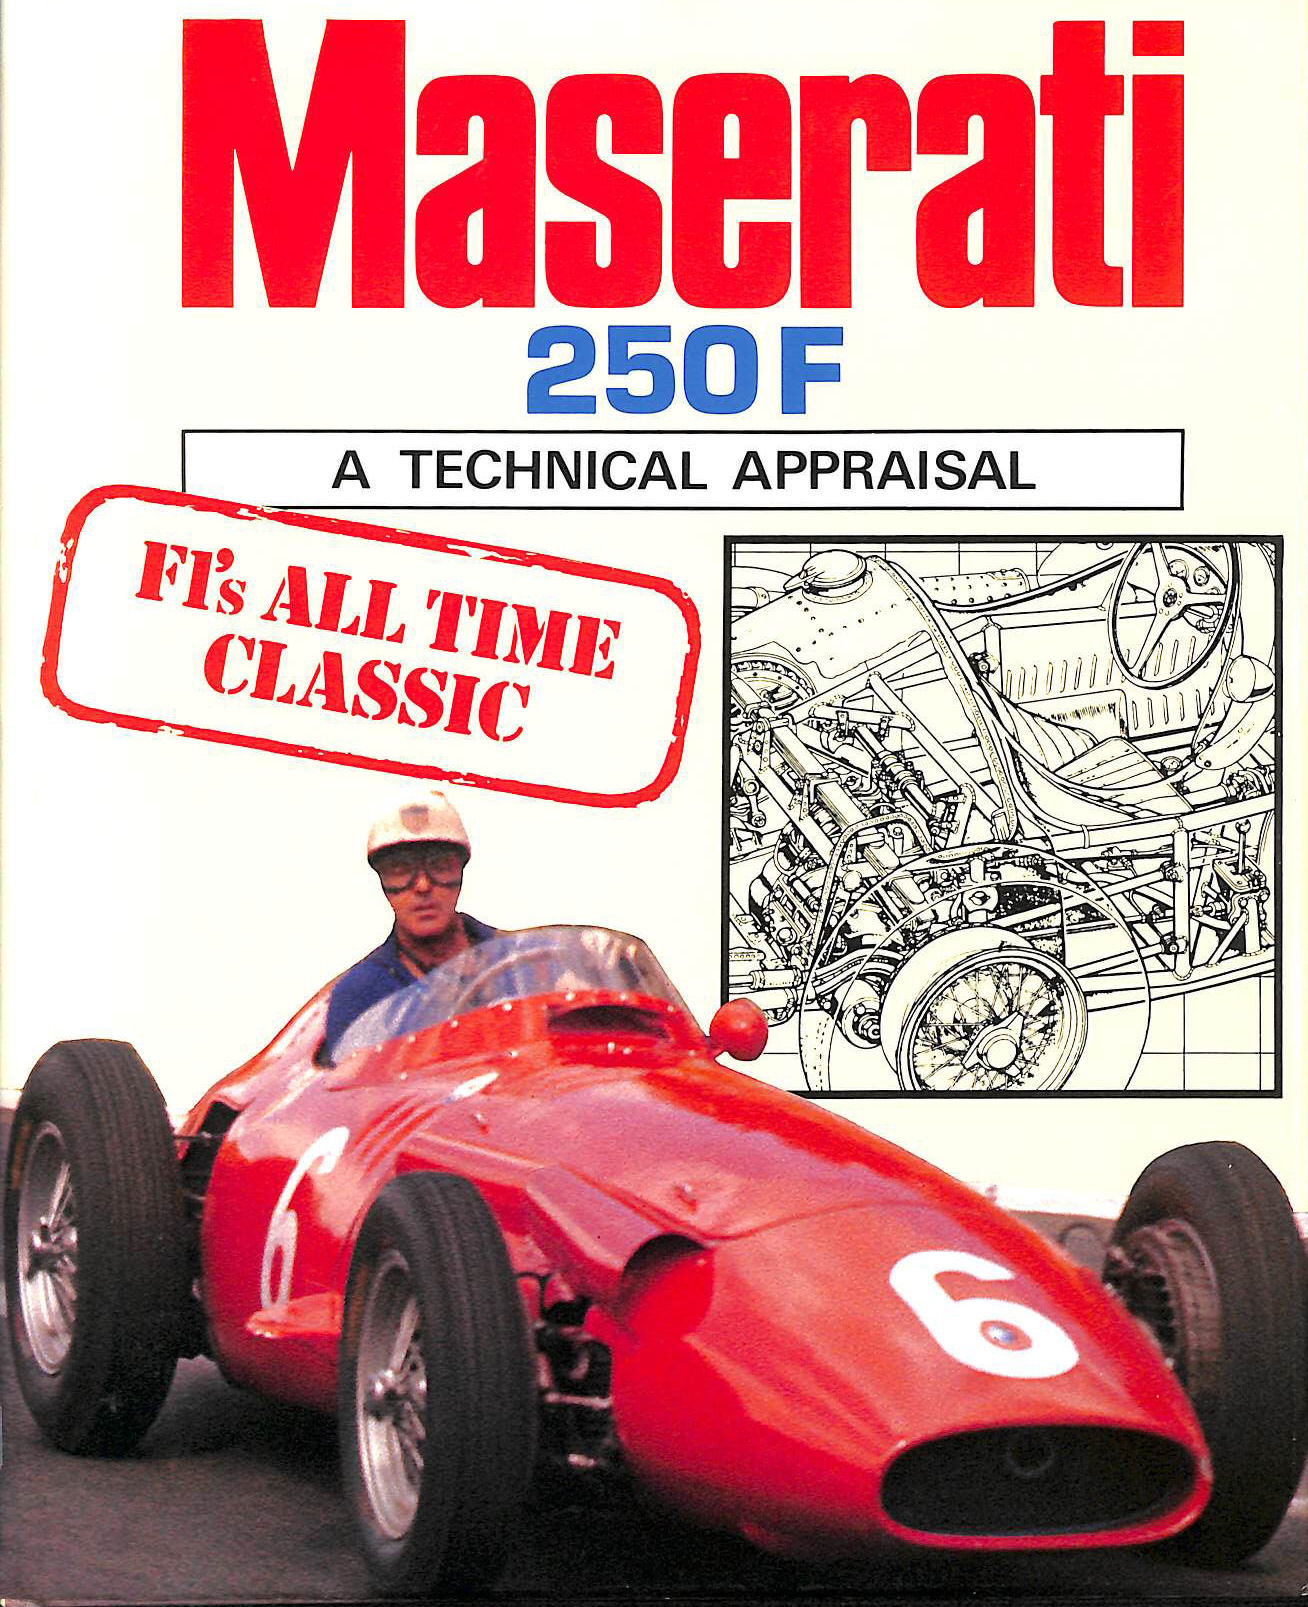 Maserati 250F - The In-line Six Grand Prix Cars: A Technical Appraisal, Andy Hall